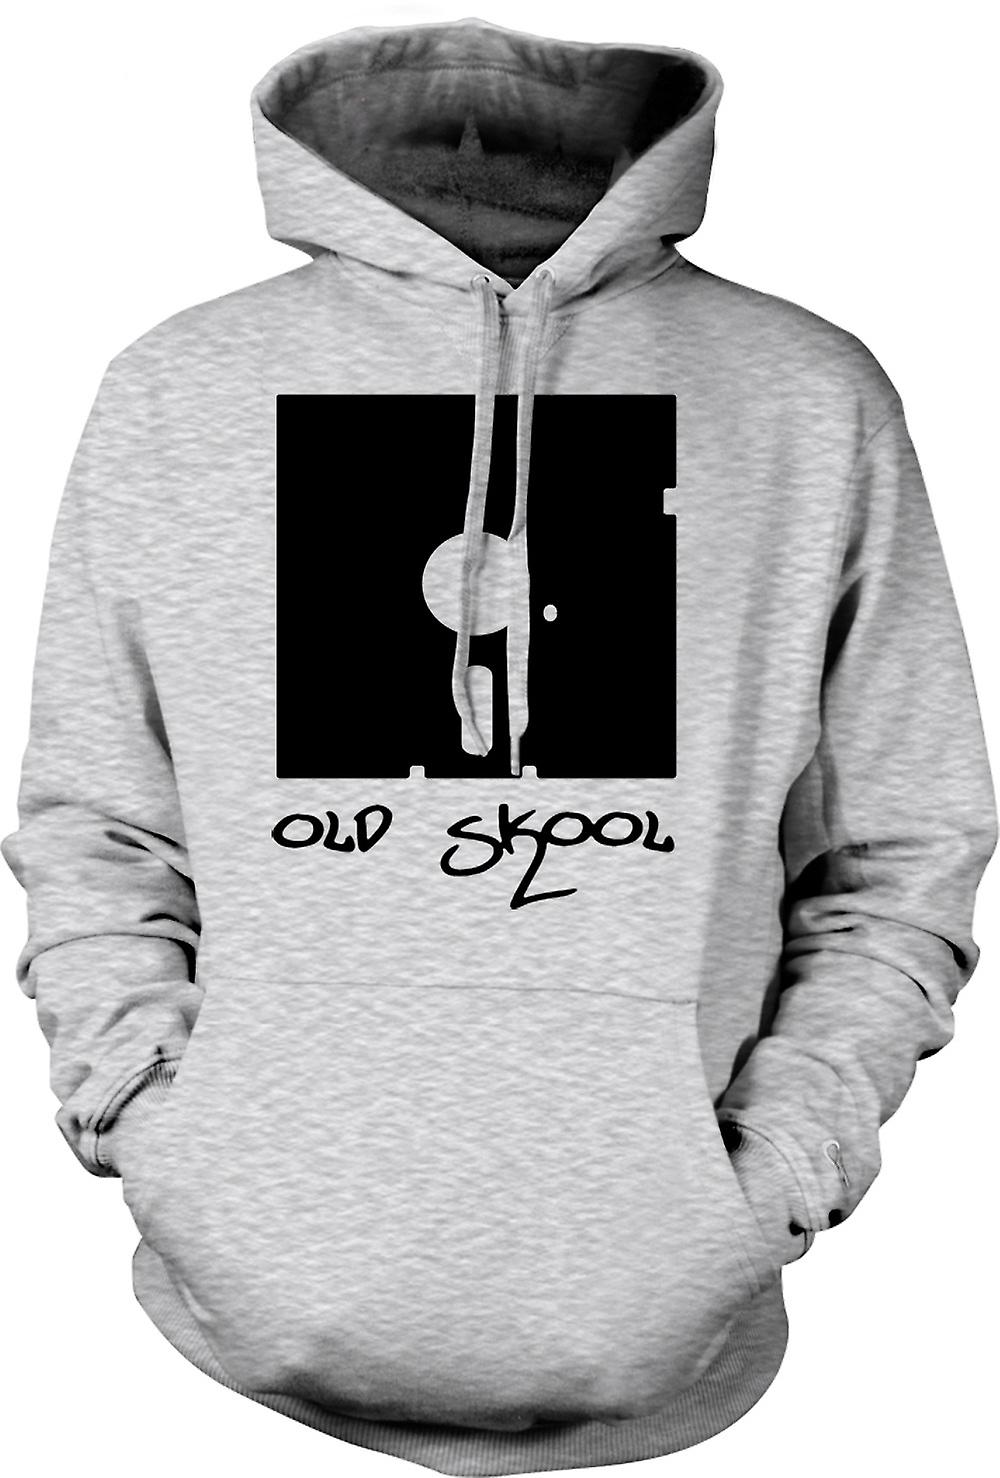 Mens Hoodie - Old Skool Floppy Disc - Funny